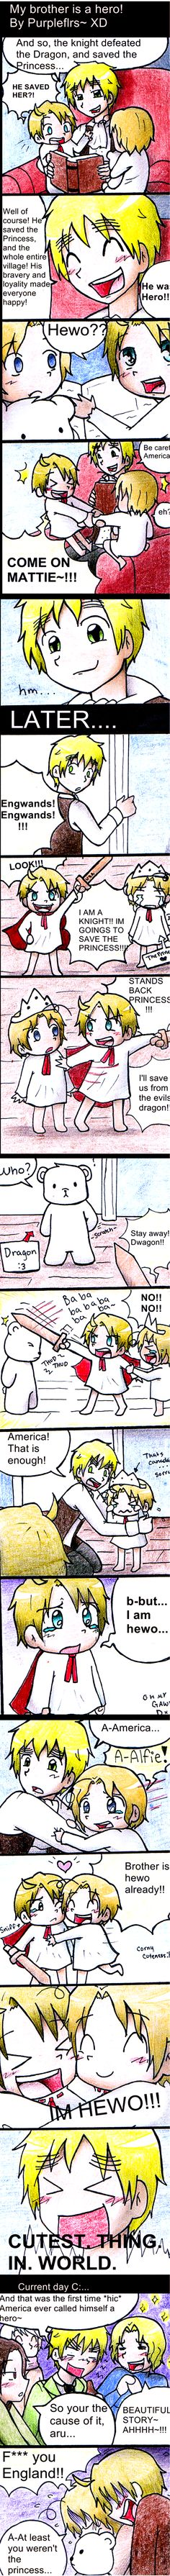 """My brother is a hero! by purpleflrs.deviantart.com on @deviantART - lol This is adorable - and really funny, too! """"At least you weren't the princess."""" Ah, Mattie, what would we do without you and your dry sense of humour? And little Alfred is just so cute!"""